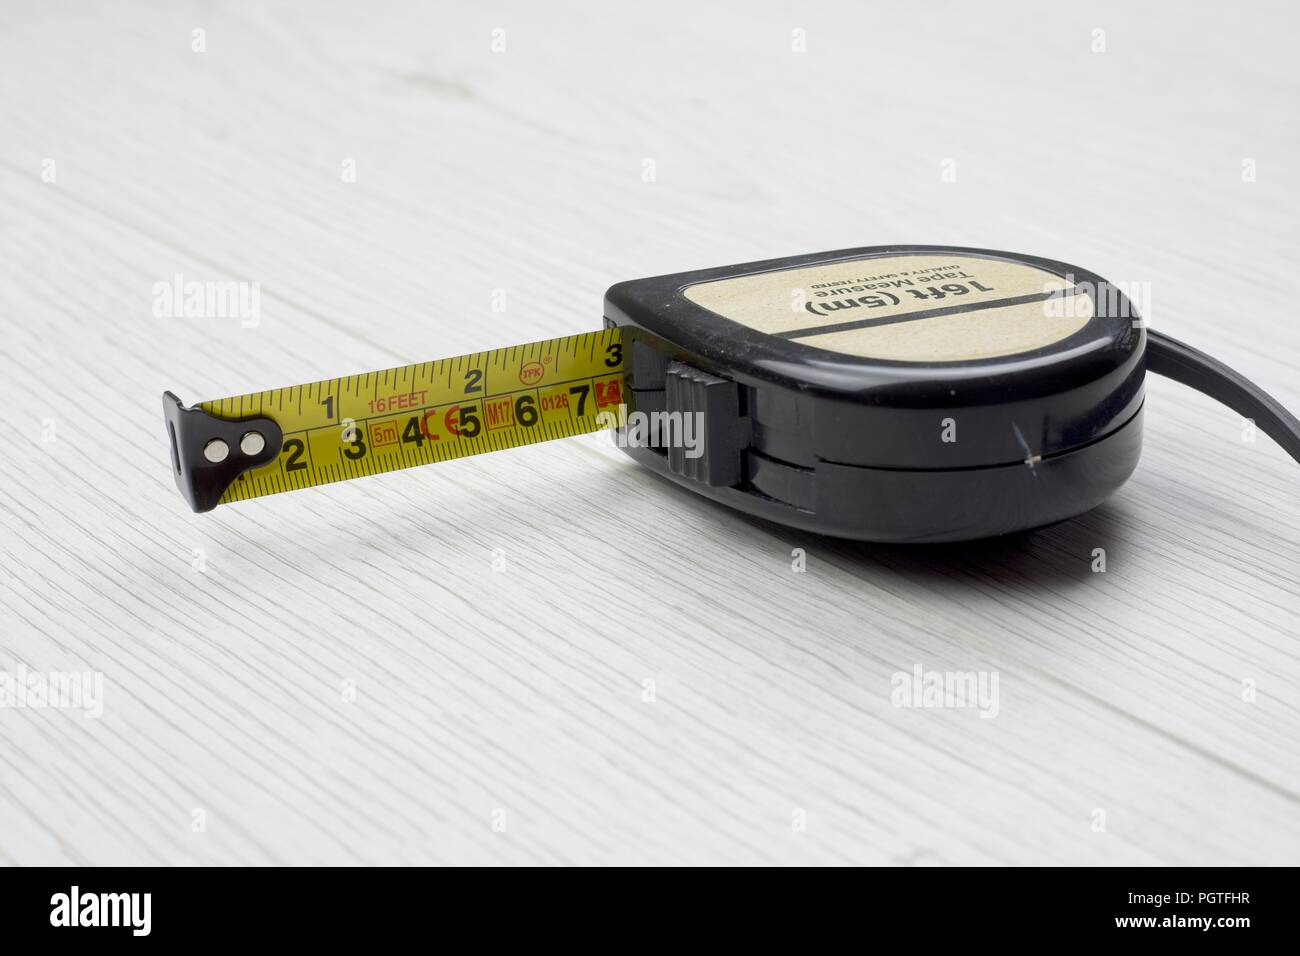 Tape measure, retractable,in metric and imperial measuremnts - Stock Image